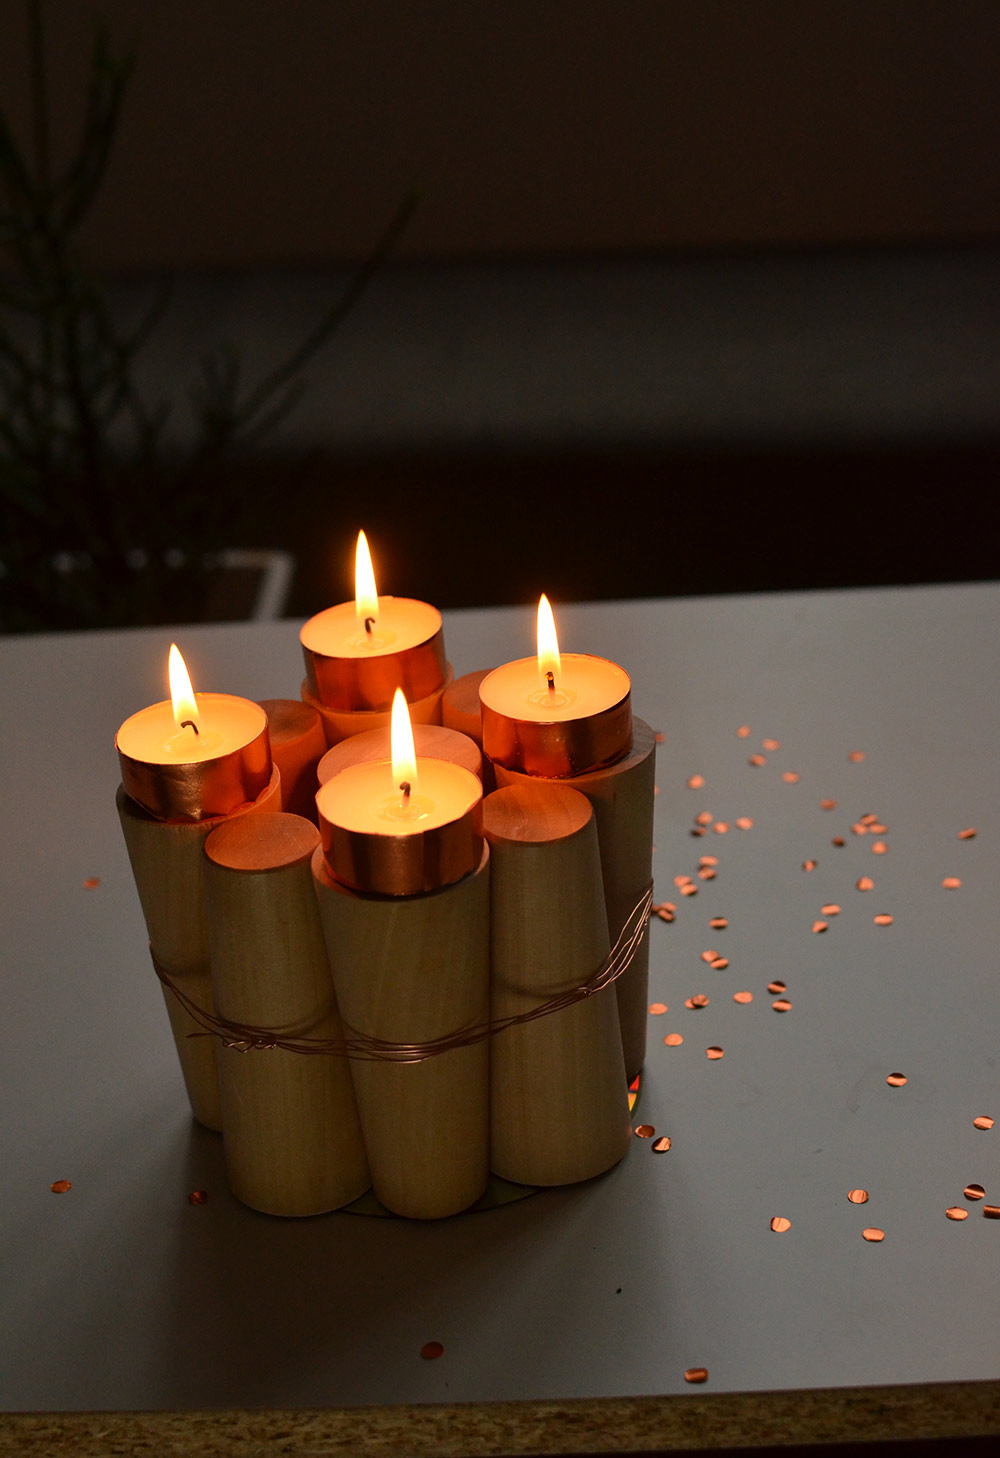 Upcycling-Adventskranz aus Holz: DIY-Projekt